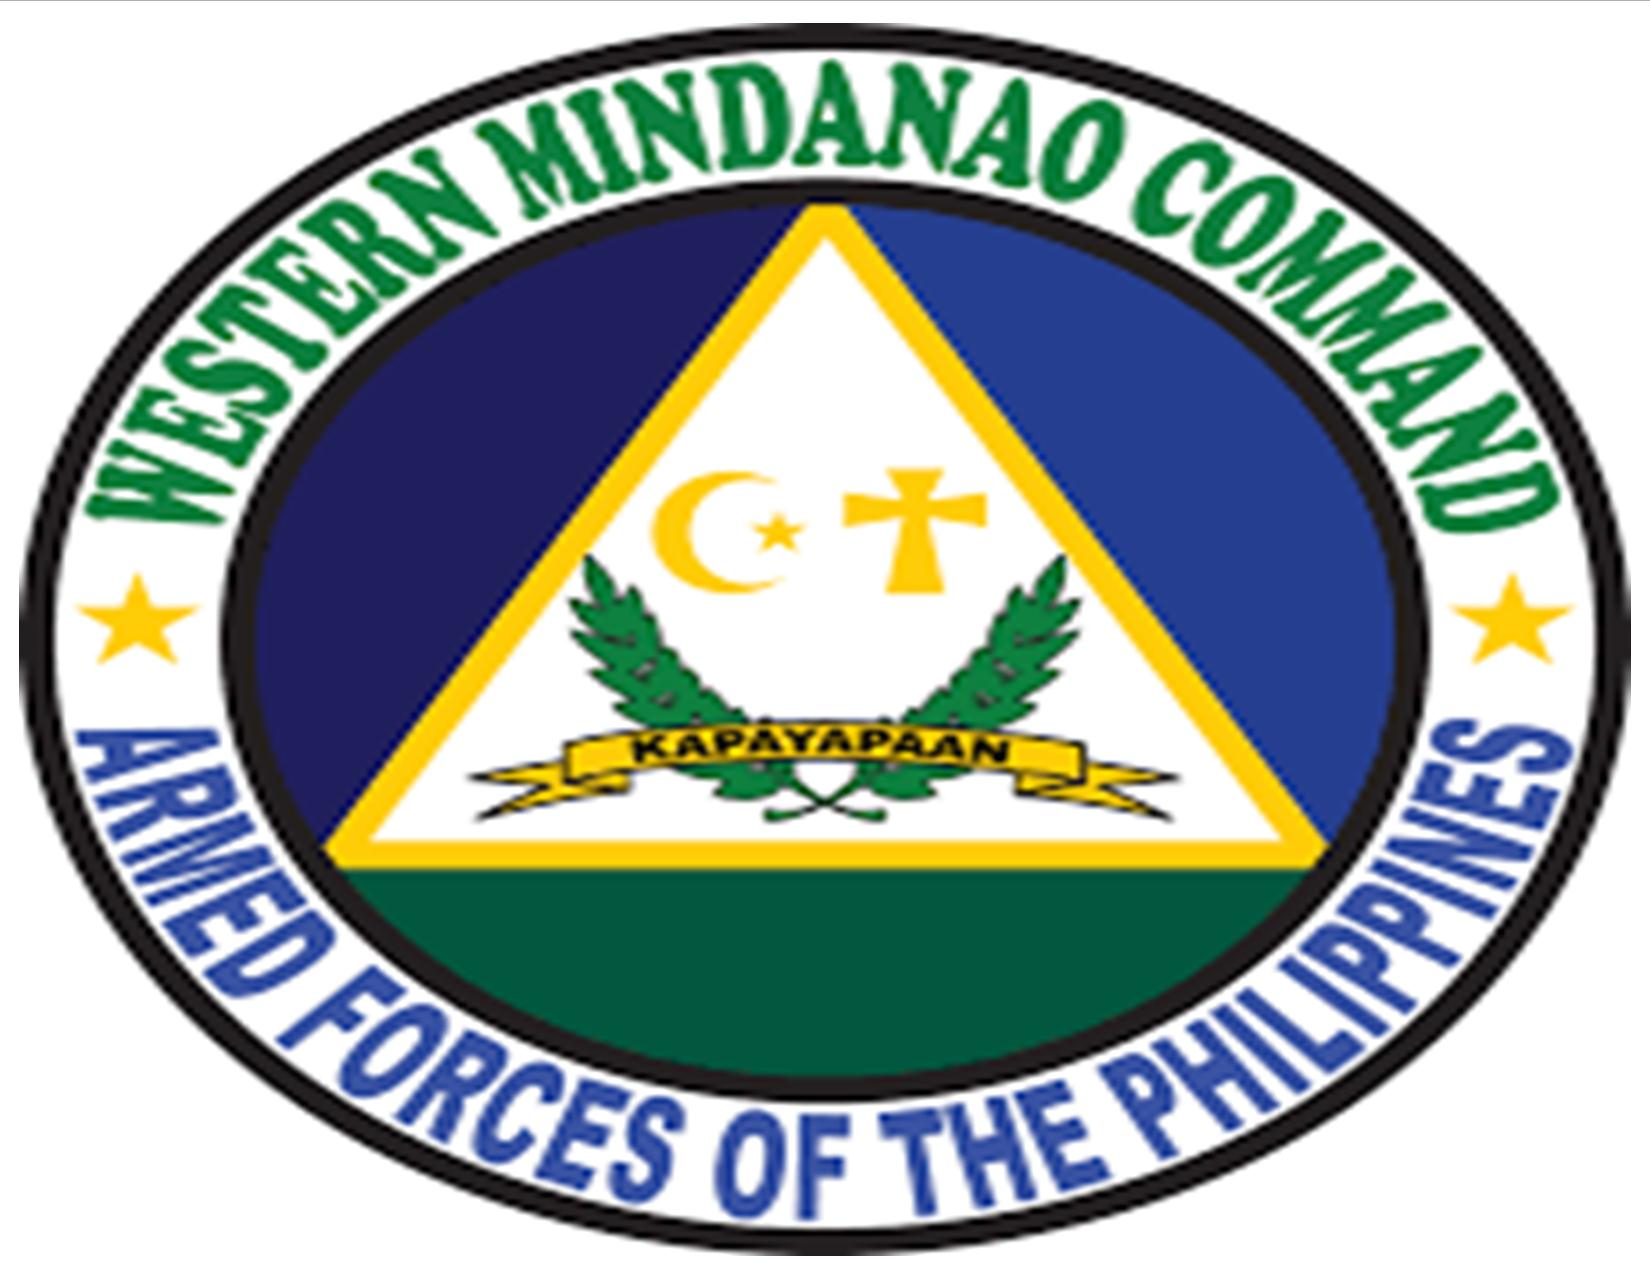 armed forces of the philippines- western mindanao command